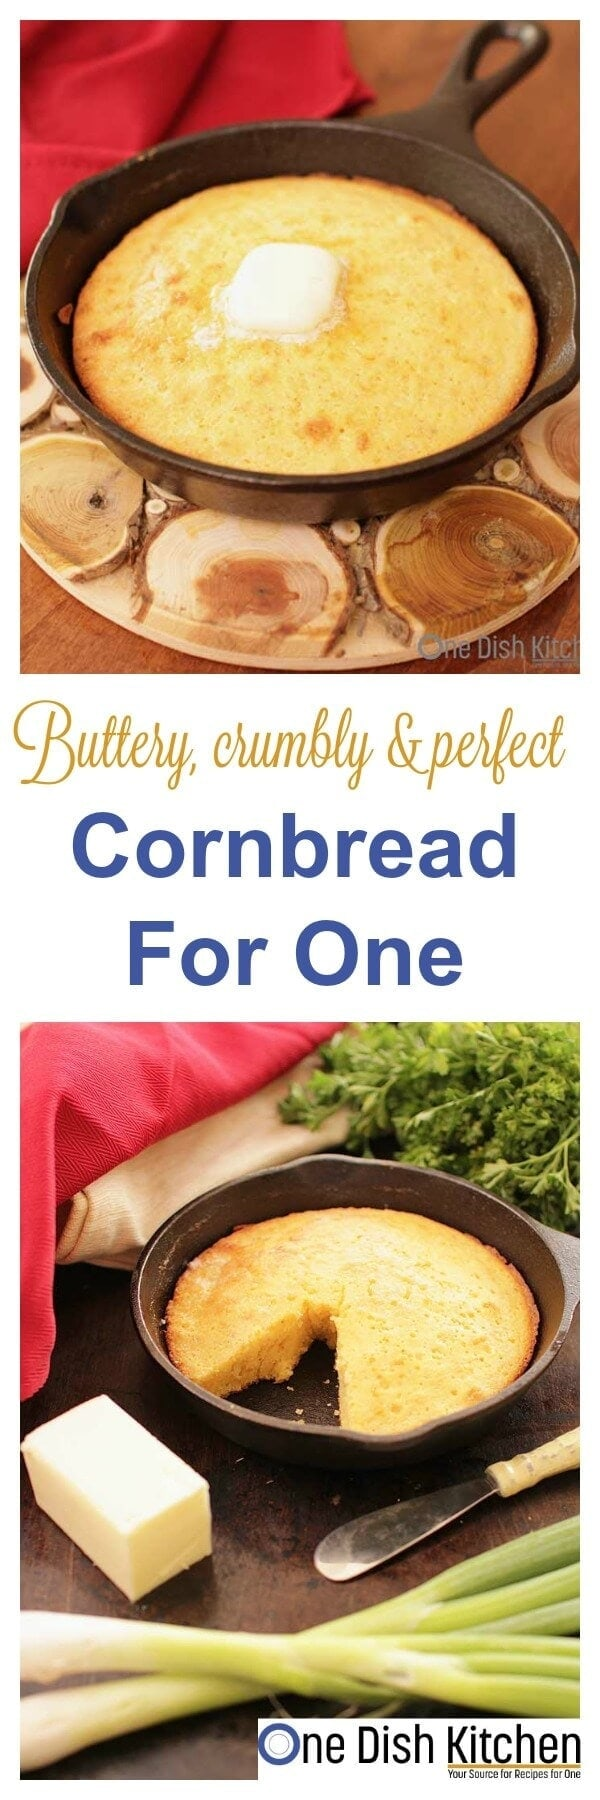 This classic, buttery and sweet Cornbread For One can be made in a small cast iron skillet or mini baking dish. It's the perfect size if you're cooking for one. | One Dish Kitchen